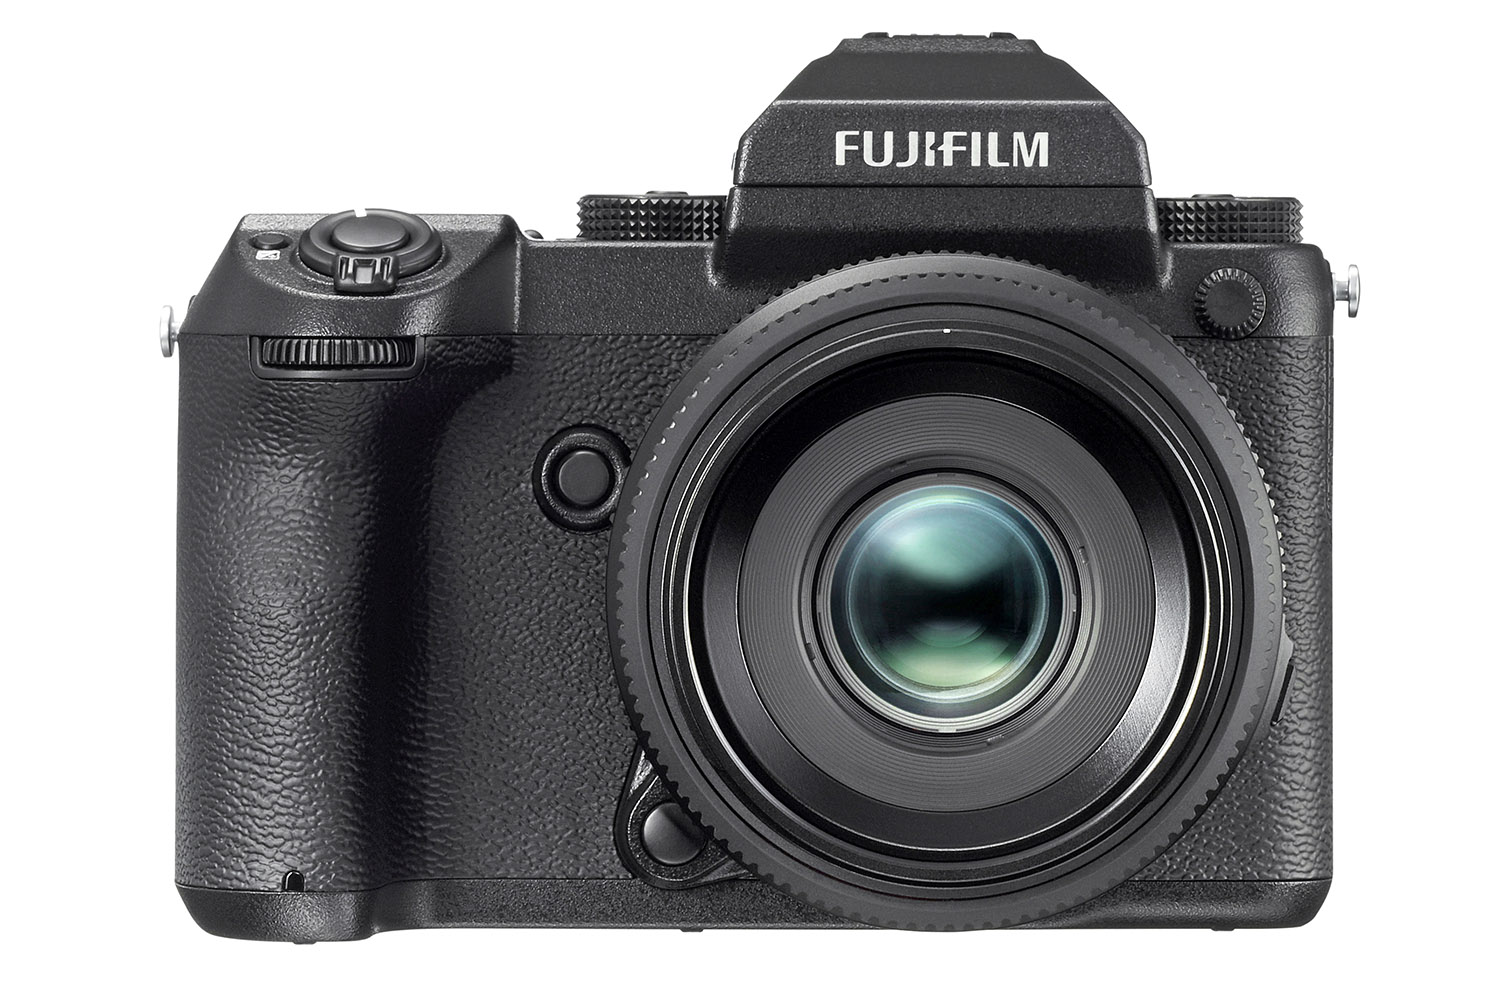 The GFX 50S is Fuji's first mirrorless medium-format camera